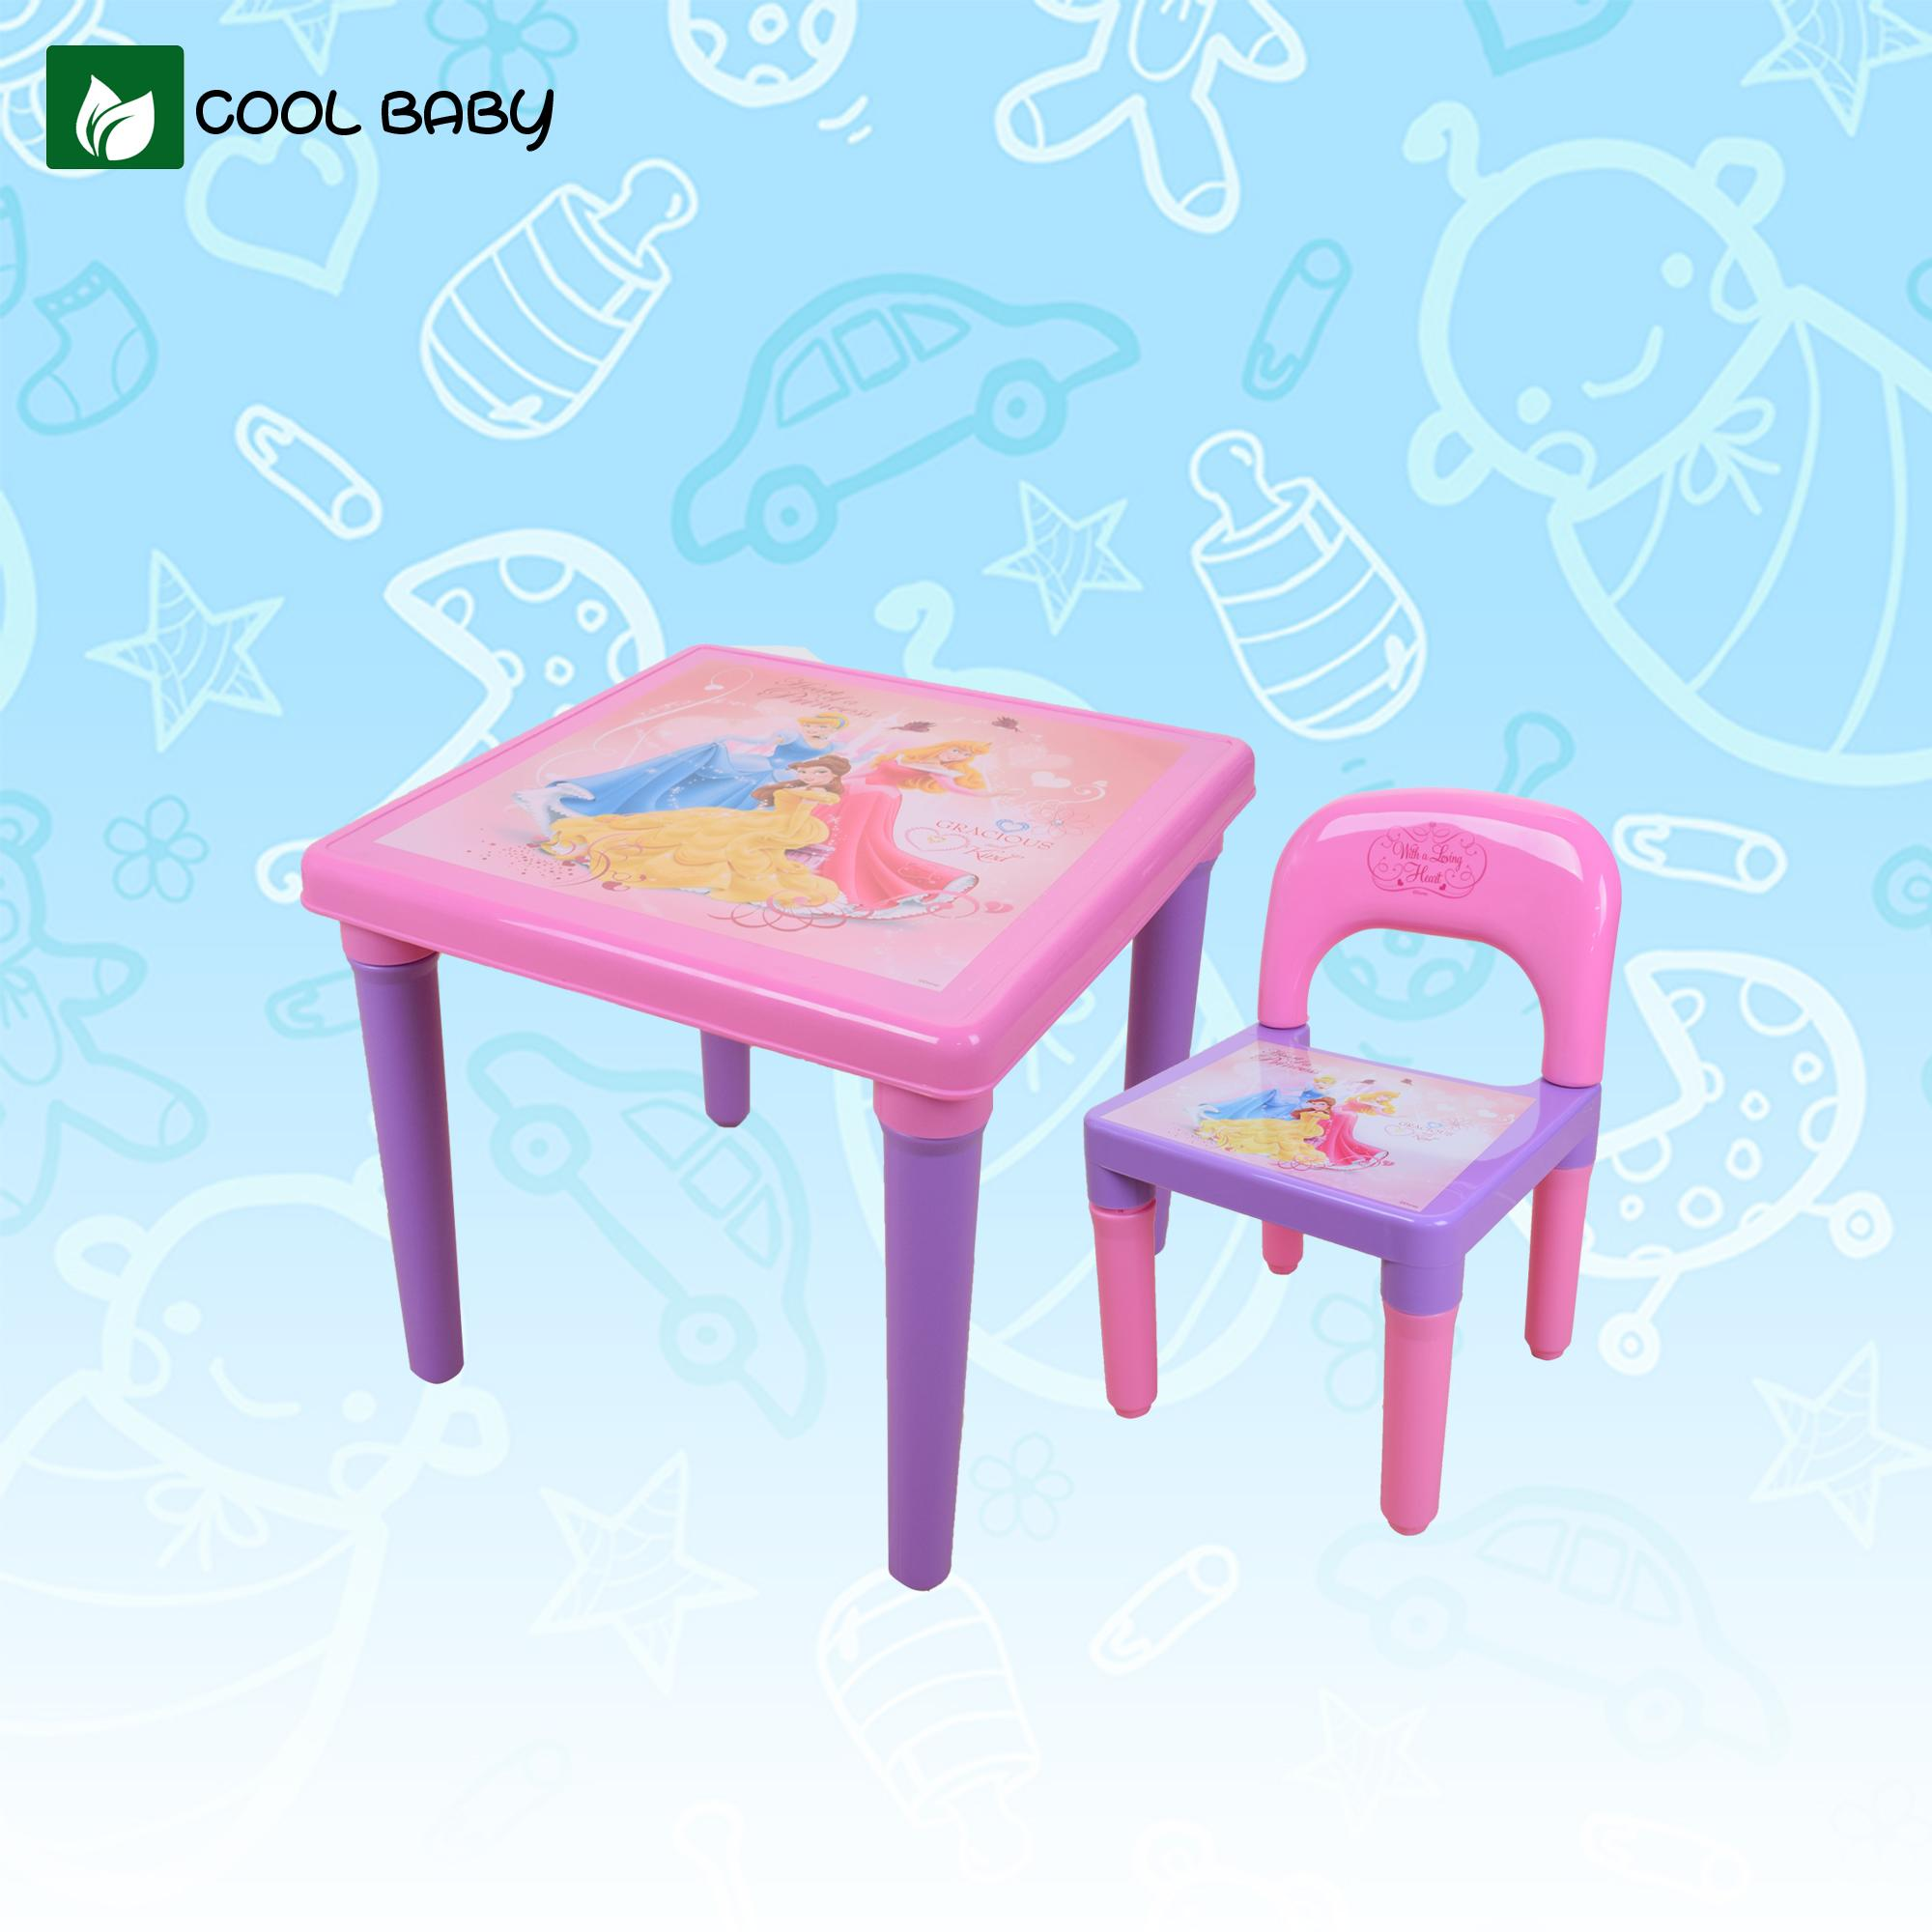 Cool Baby Character Table And Chairs By Cool Baby.